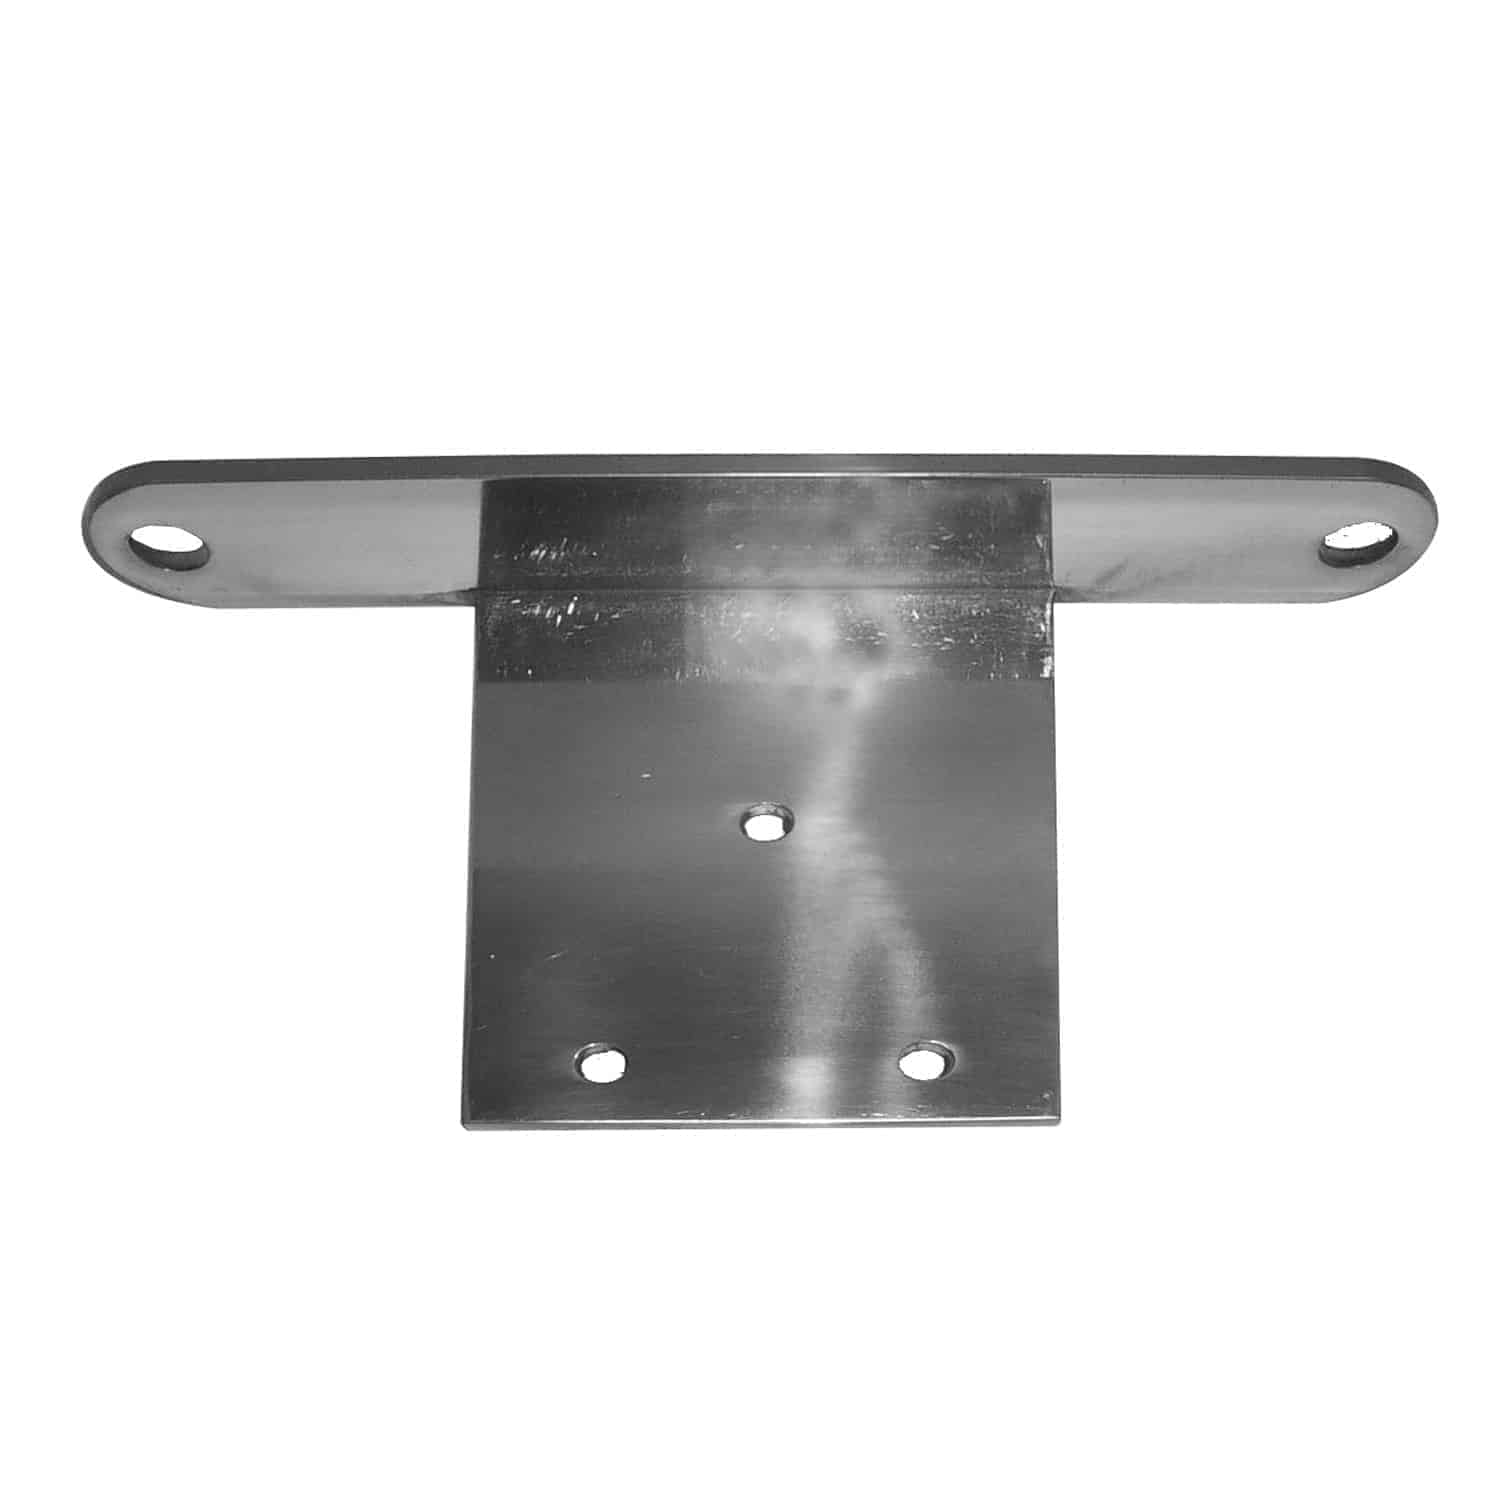 "PROCOMM - PCA35 1998- 2006 Jeep Aluminum Tail Light Mount With Dual 1/2"" Holes"